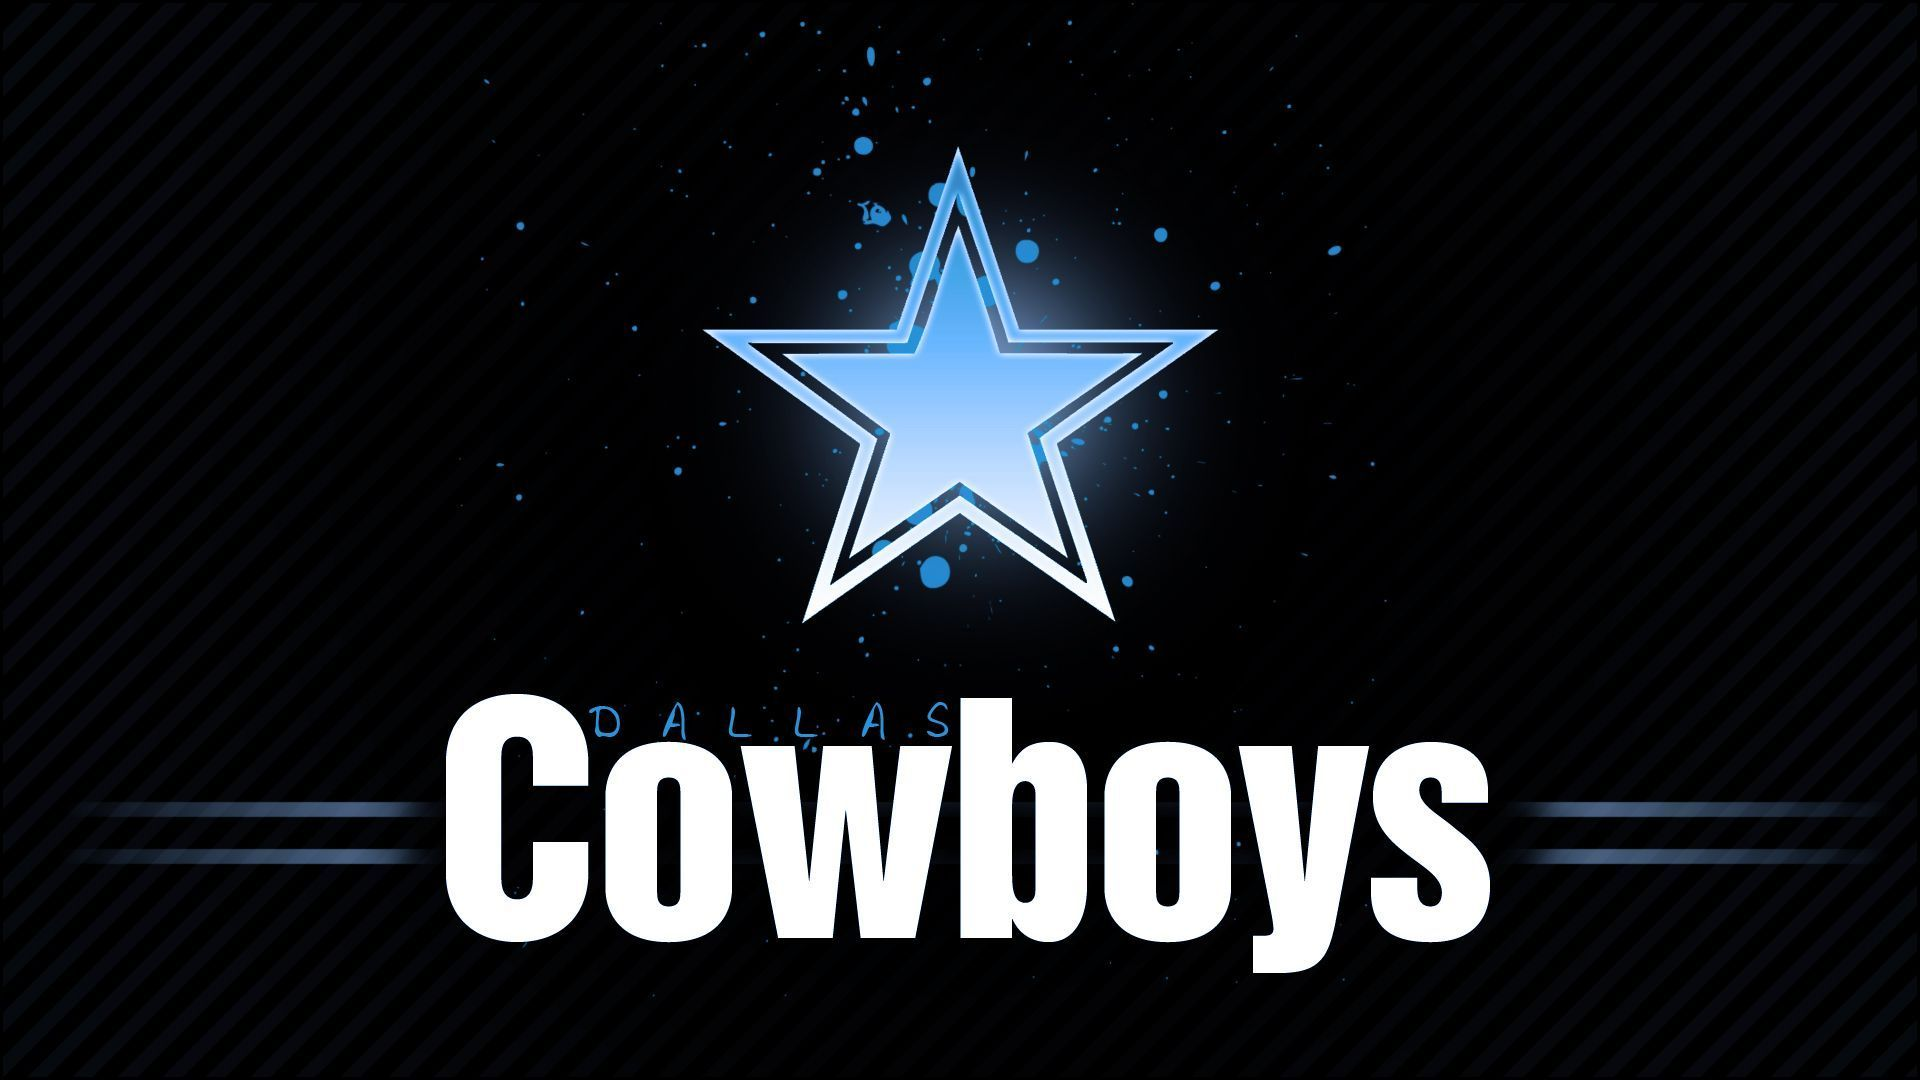 D Dallas Cowboys Live Wallpaper For Android Free Download Apps 1920x1080 Wallpapers 30